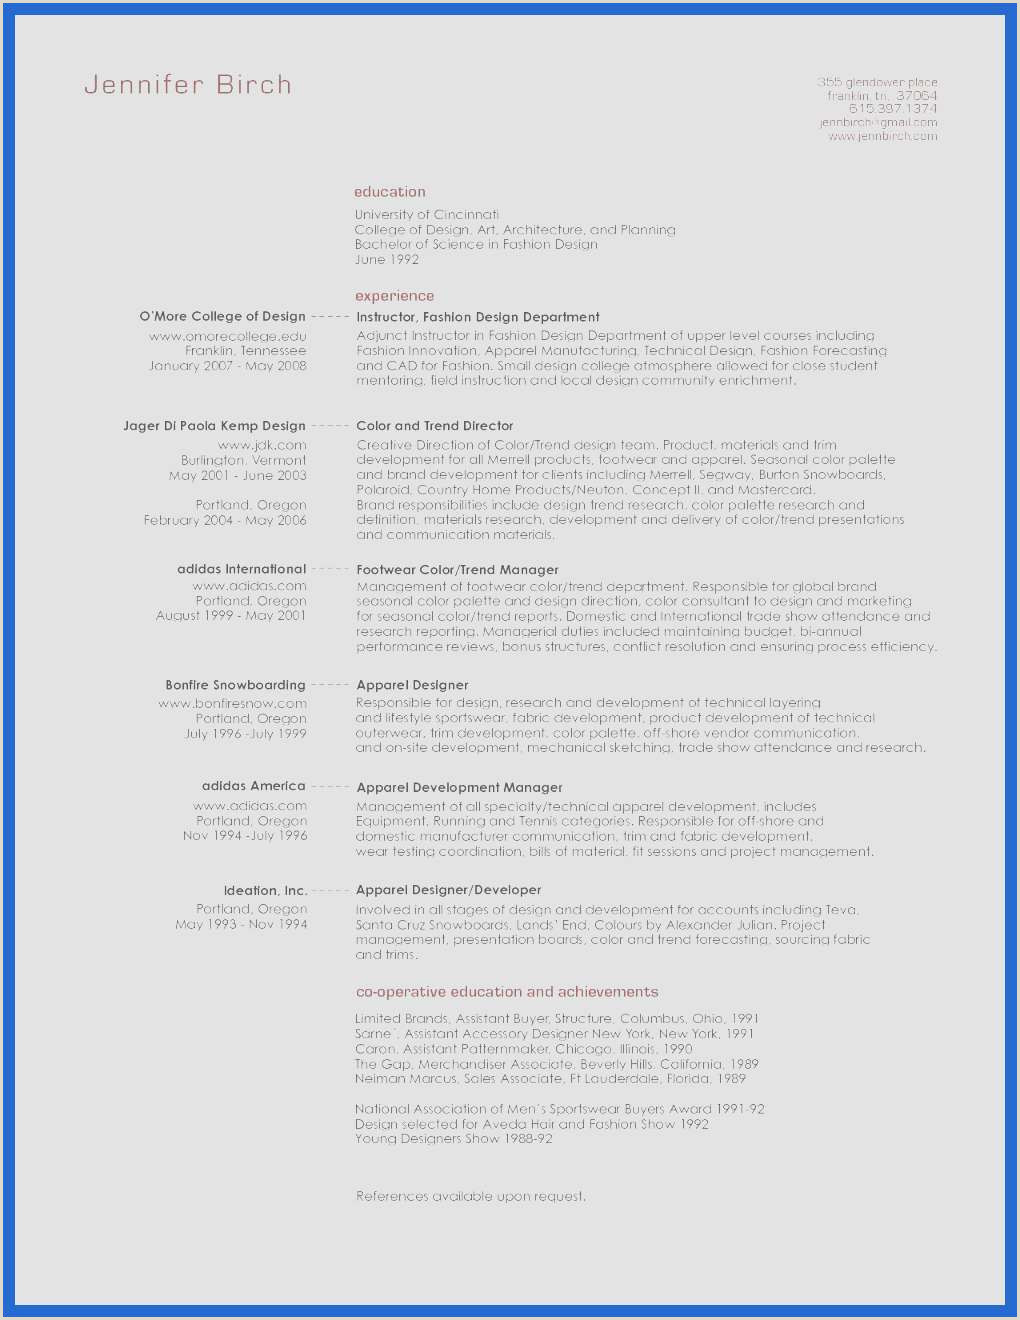 Professional Cv format In Word for Accountant Modele Cv Word 2007 Libre Cv Model Best Resume format In